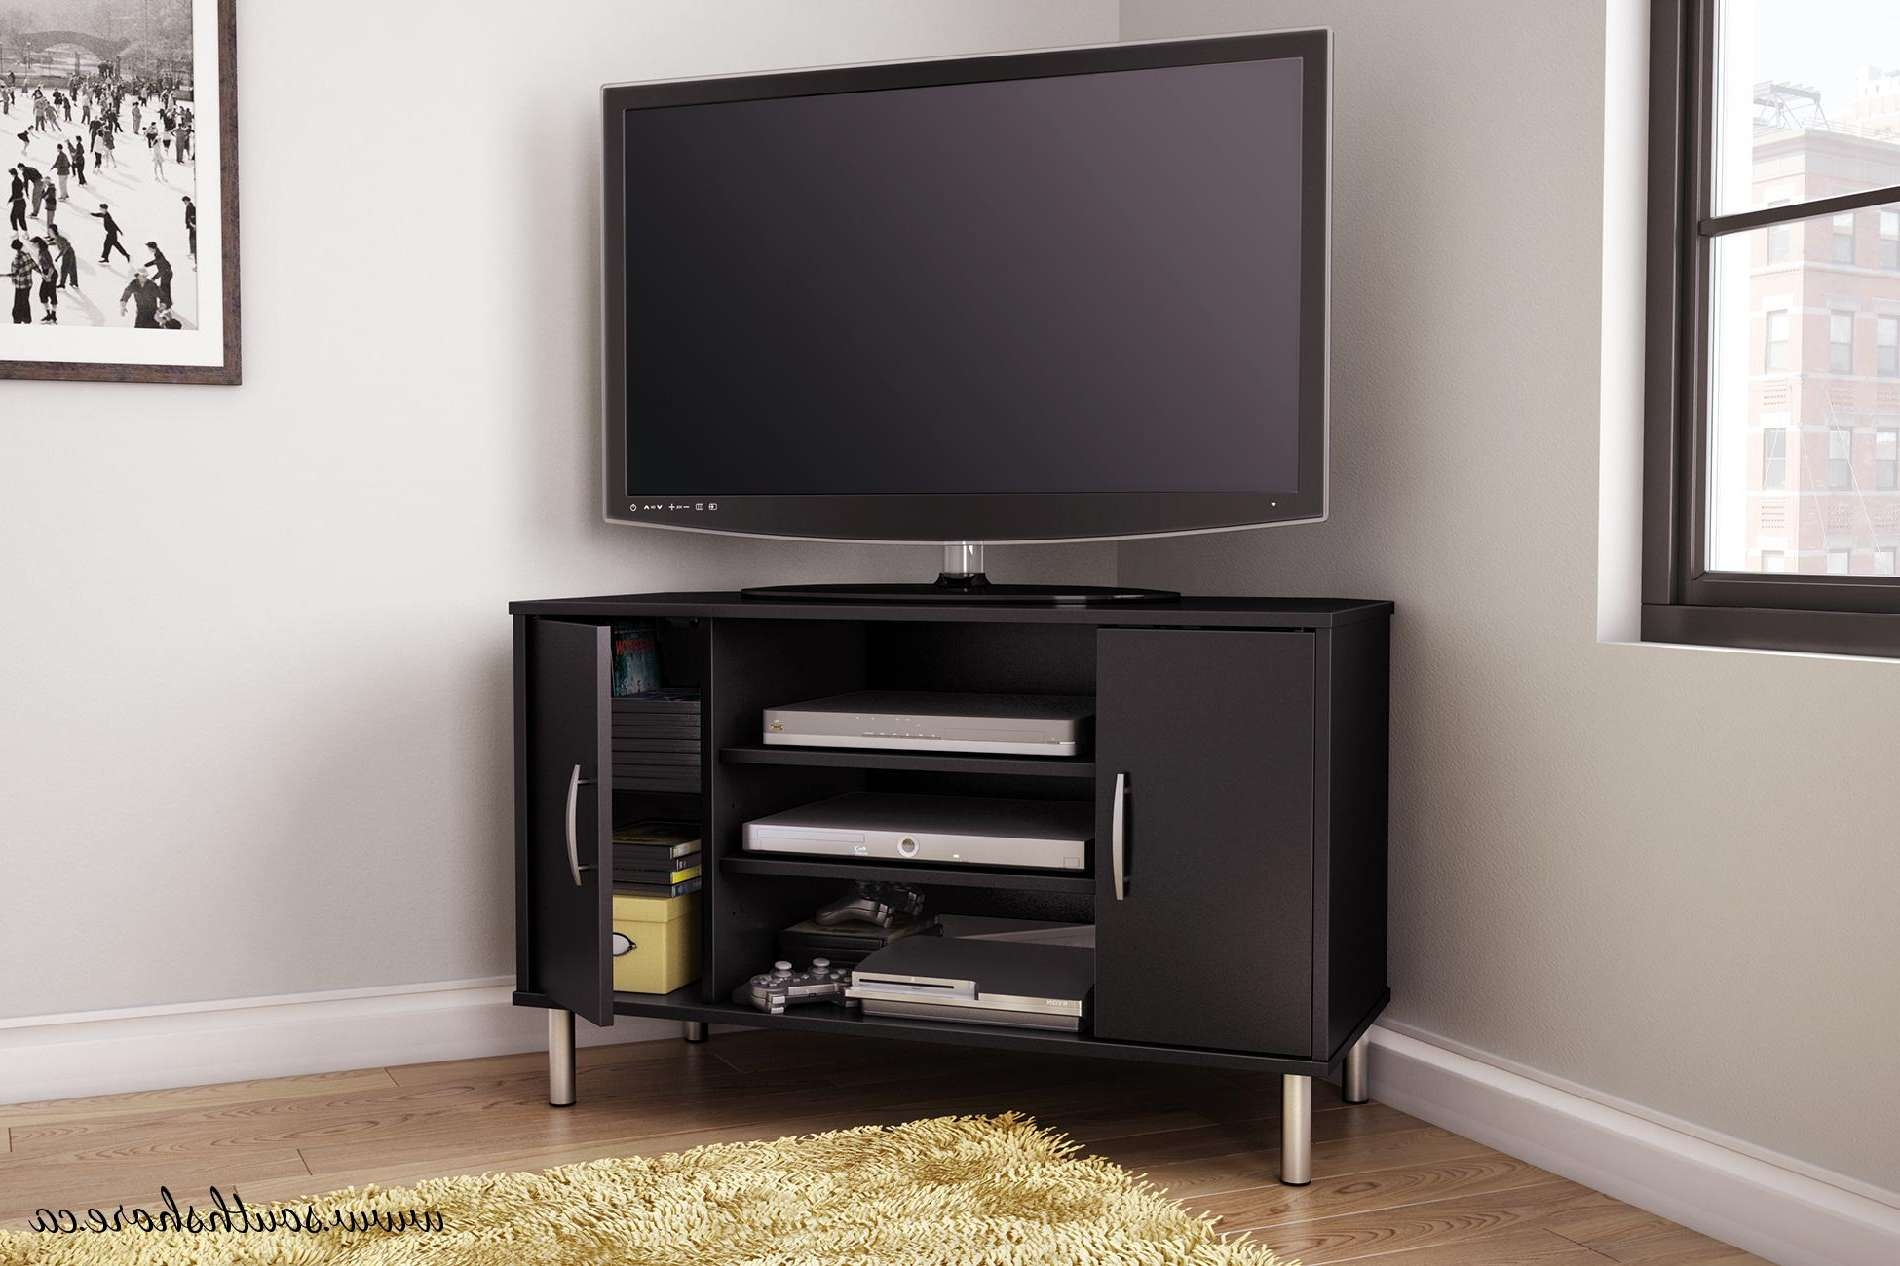 Corner Tv Stand Black | Home Design Ideas With Regard To Tv Stands For Corners (View 12 of 20)